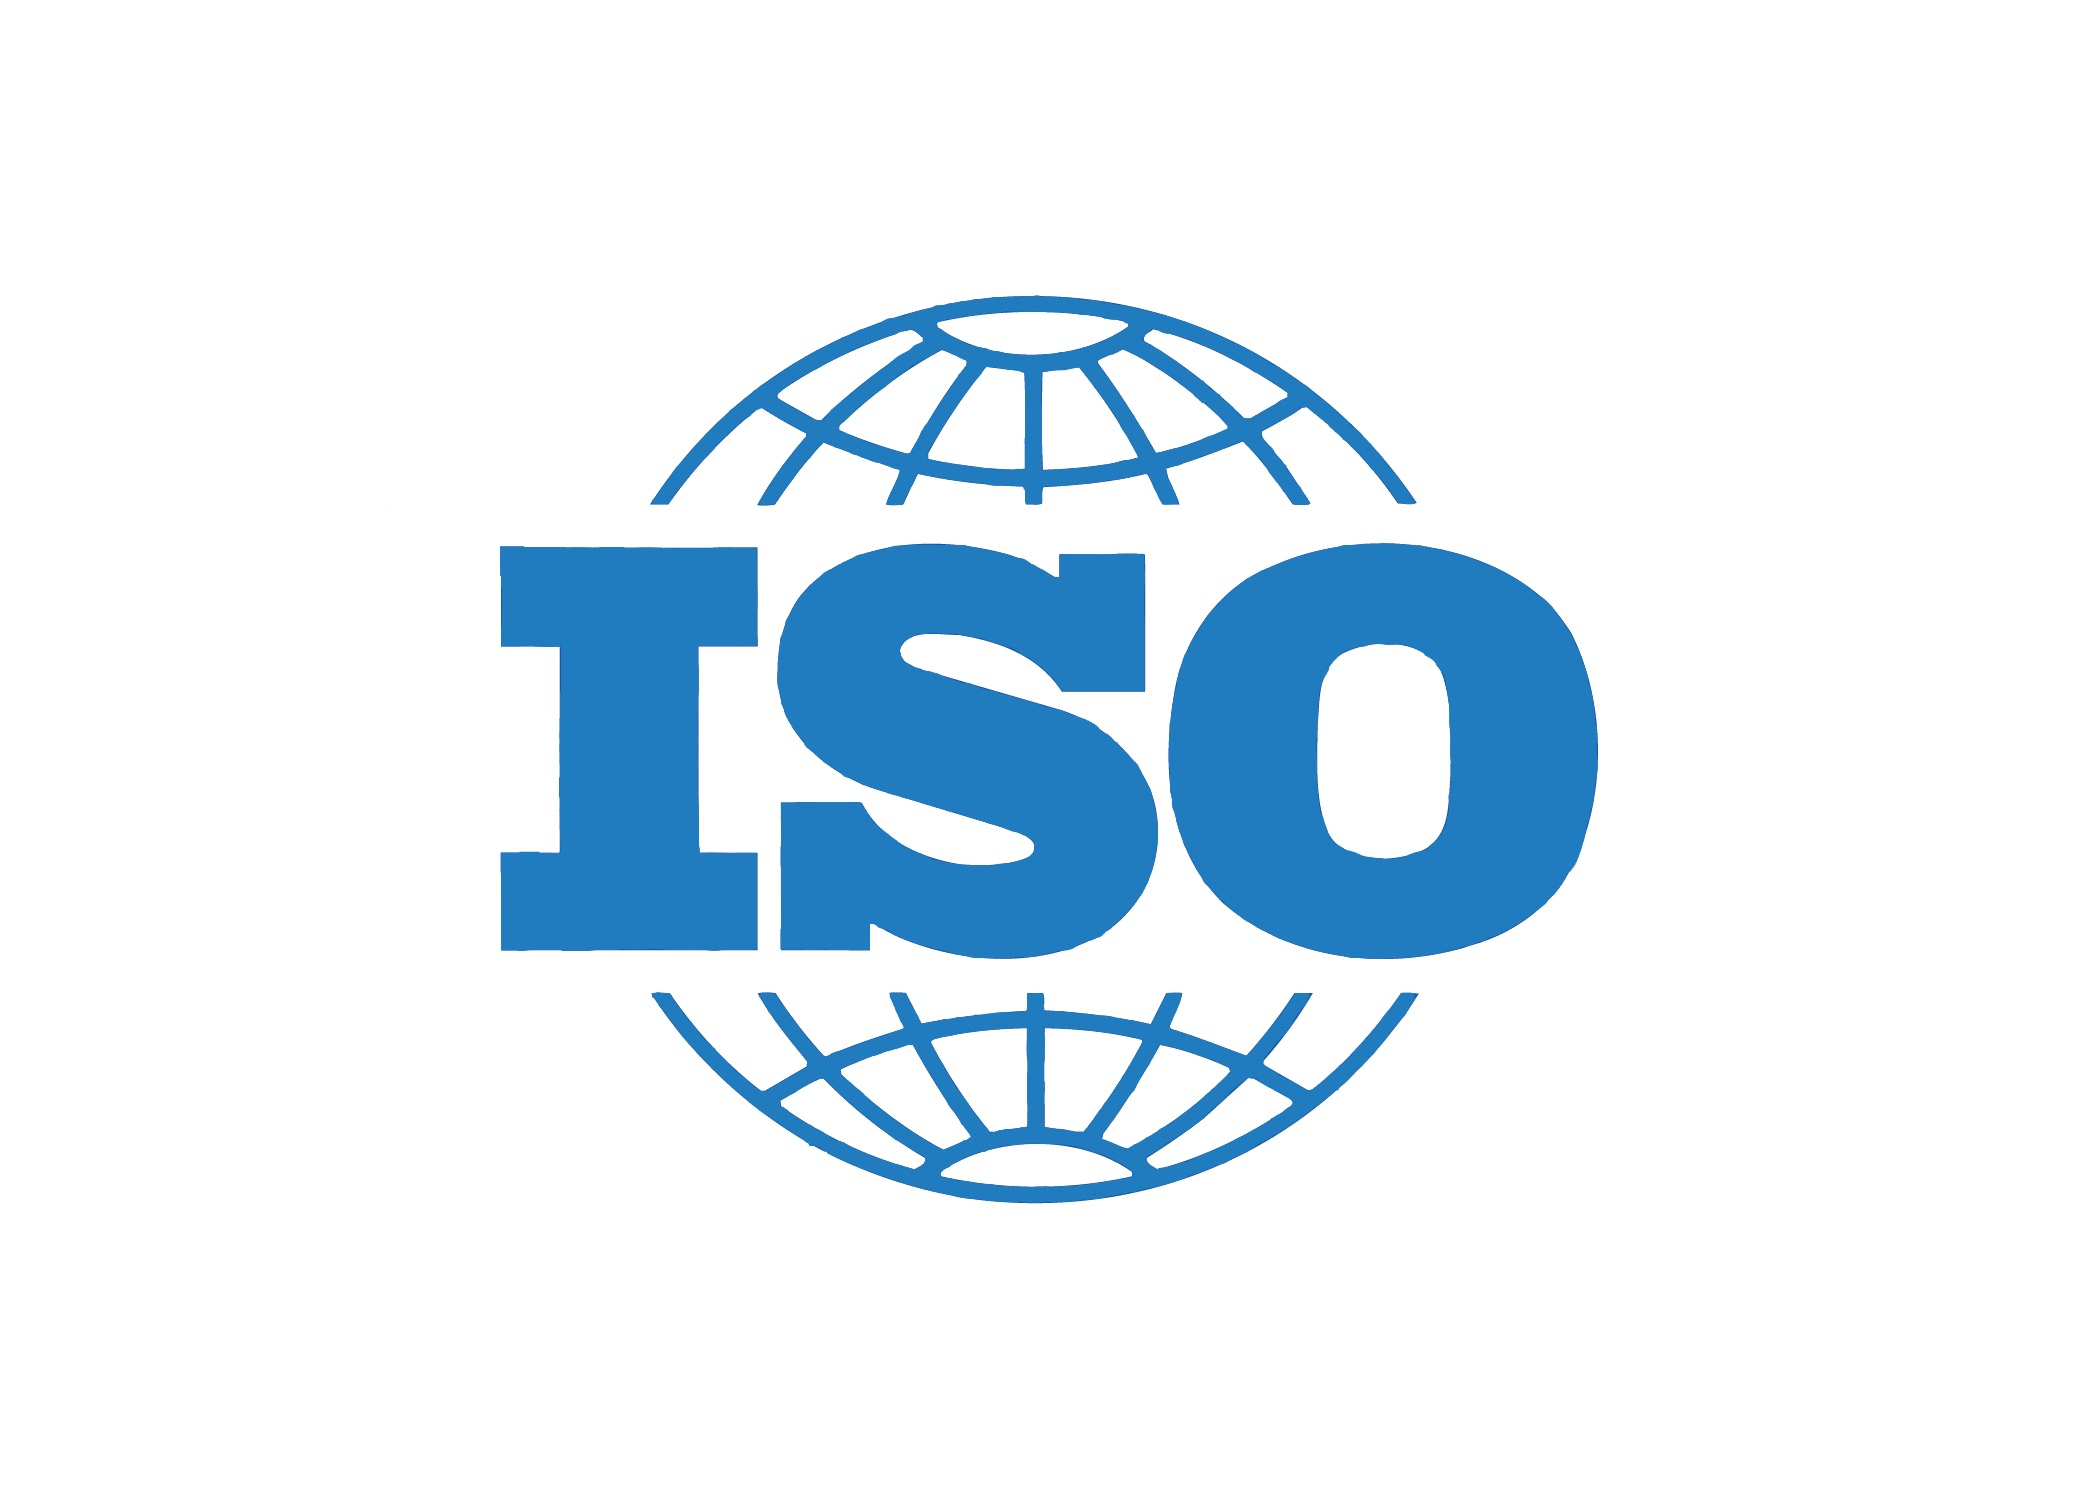 OpenChain 2.1 is ISO/IEC 5230:2020, the International Standard for open source compliance